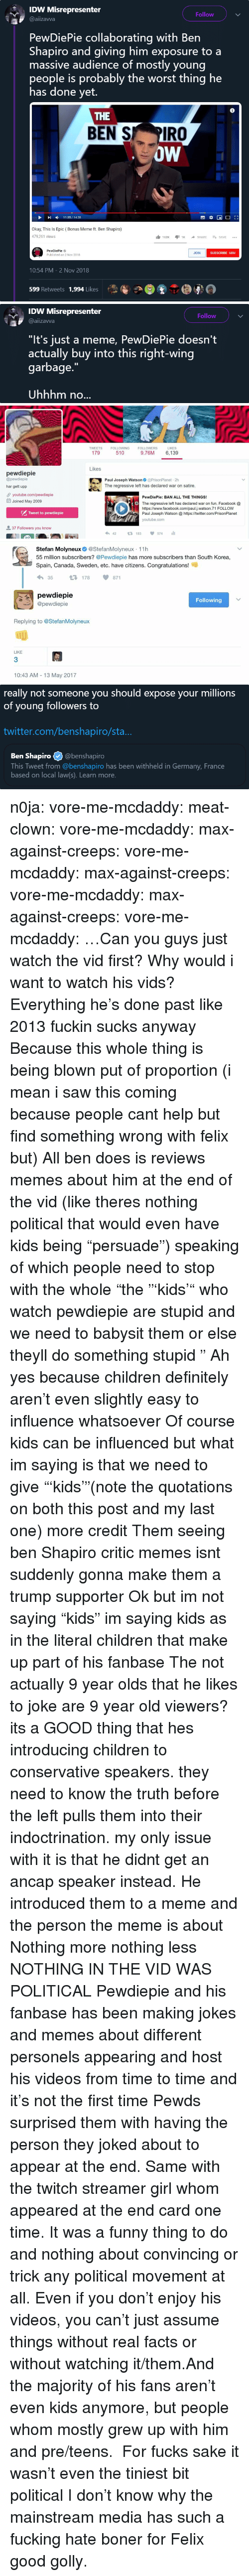 """Boner, Children, and Definitely: IDW Misrepresenter  Follow  @aiizavva  PewDiePie collaborating with Ben  Shapiro and giving him exposure to a  massive audience of mostly young  people is probably the worst thing he  has done yet.  THE  BEN S PIRO  oW  ,  1135 / 14:28  Okay, This Is Epic (Bonus Meme ft. Ben Shapiro)  479,261 views  162K  SHARESAVE  PewDiePie  Published on 2 Now 2018  JOIN  SUBSCRIBE 68M  10:54 PM-2 Nov 2018  599 Retweets 1,994 Likes  备  @   IDW Misrepresenter  Follow  @aiizavwa  """"It's just a meme, PewDiePie doesn't  actually buy into this right-wing  garbage.""""  Uhhhm no...   TWEETS  FOLLOWING  FOLLOWERS  LIKES  179  510  9.76M 6,139  Likes  pewdiepie  @pewdiepie  har gett upp  9 youtube.com/pewdiepie  Paul Joseph Watson@PrisonPlanet 2h  The regressive left has declared war on satire.  PewDiePie: BAN ALL THE THINGS!  The regressive left has declared war on fun. Facebook@  https://www.facebook.com/paul.j.watson.71 FOLLOW  Joined May 2009  Tweet to pewdiepie  Paul Joseph Watson  https://twitter.com/PrisonPlanet  youtube.com  37 Followers you know  42 183 574   Stefan Molyneux @StefanMolyneux 11h  55 million subscribers? @Pewdiepie has more subscribers than South Korea,  Spain, Canada, Sweden, etc. have citizens. Congratulations!  35178 871  pewdiepie  @pewdiepie  Following  Replying to @StefanMolyneux  LIKE  3  10:43 AM 13 May 2017   really not someone you should expose your millions  of young followers to  twitter.com/benshapiro/sta  Ben Shapiro@benshapiro  This Tweet from @benshapiro has been withheld in Germany, France  based on local law(s). Learn more. n0ja: vore-me-mcdaddy:  meat-clown:  vore-me-mcdaddy:  max-against-creeps:   vore-me-mcdaddy:   max-against-creeps:  vore-me-mcdaddy:   max-against-creeps:  vore-me-mcdaddy:  …Can you guys just watch the vid first?  Why would i want to watch his vids? Everything he's done past like 2013 fuckin sucks anyway  Because this whole thing is being blown put of proportion (i mean i saw this coming because p"""